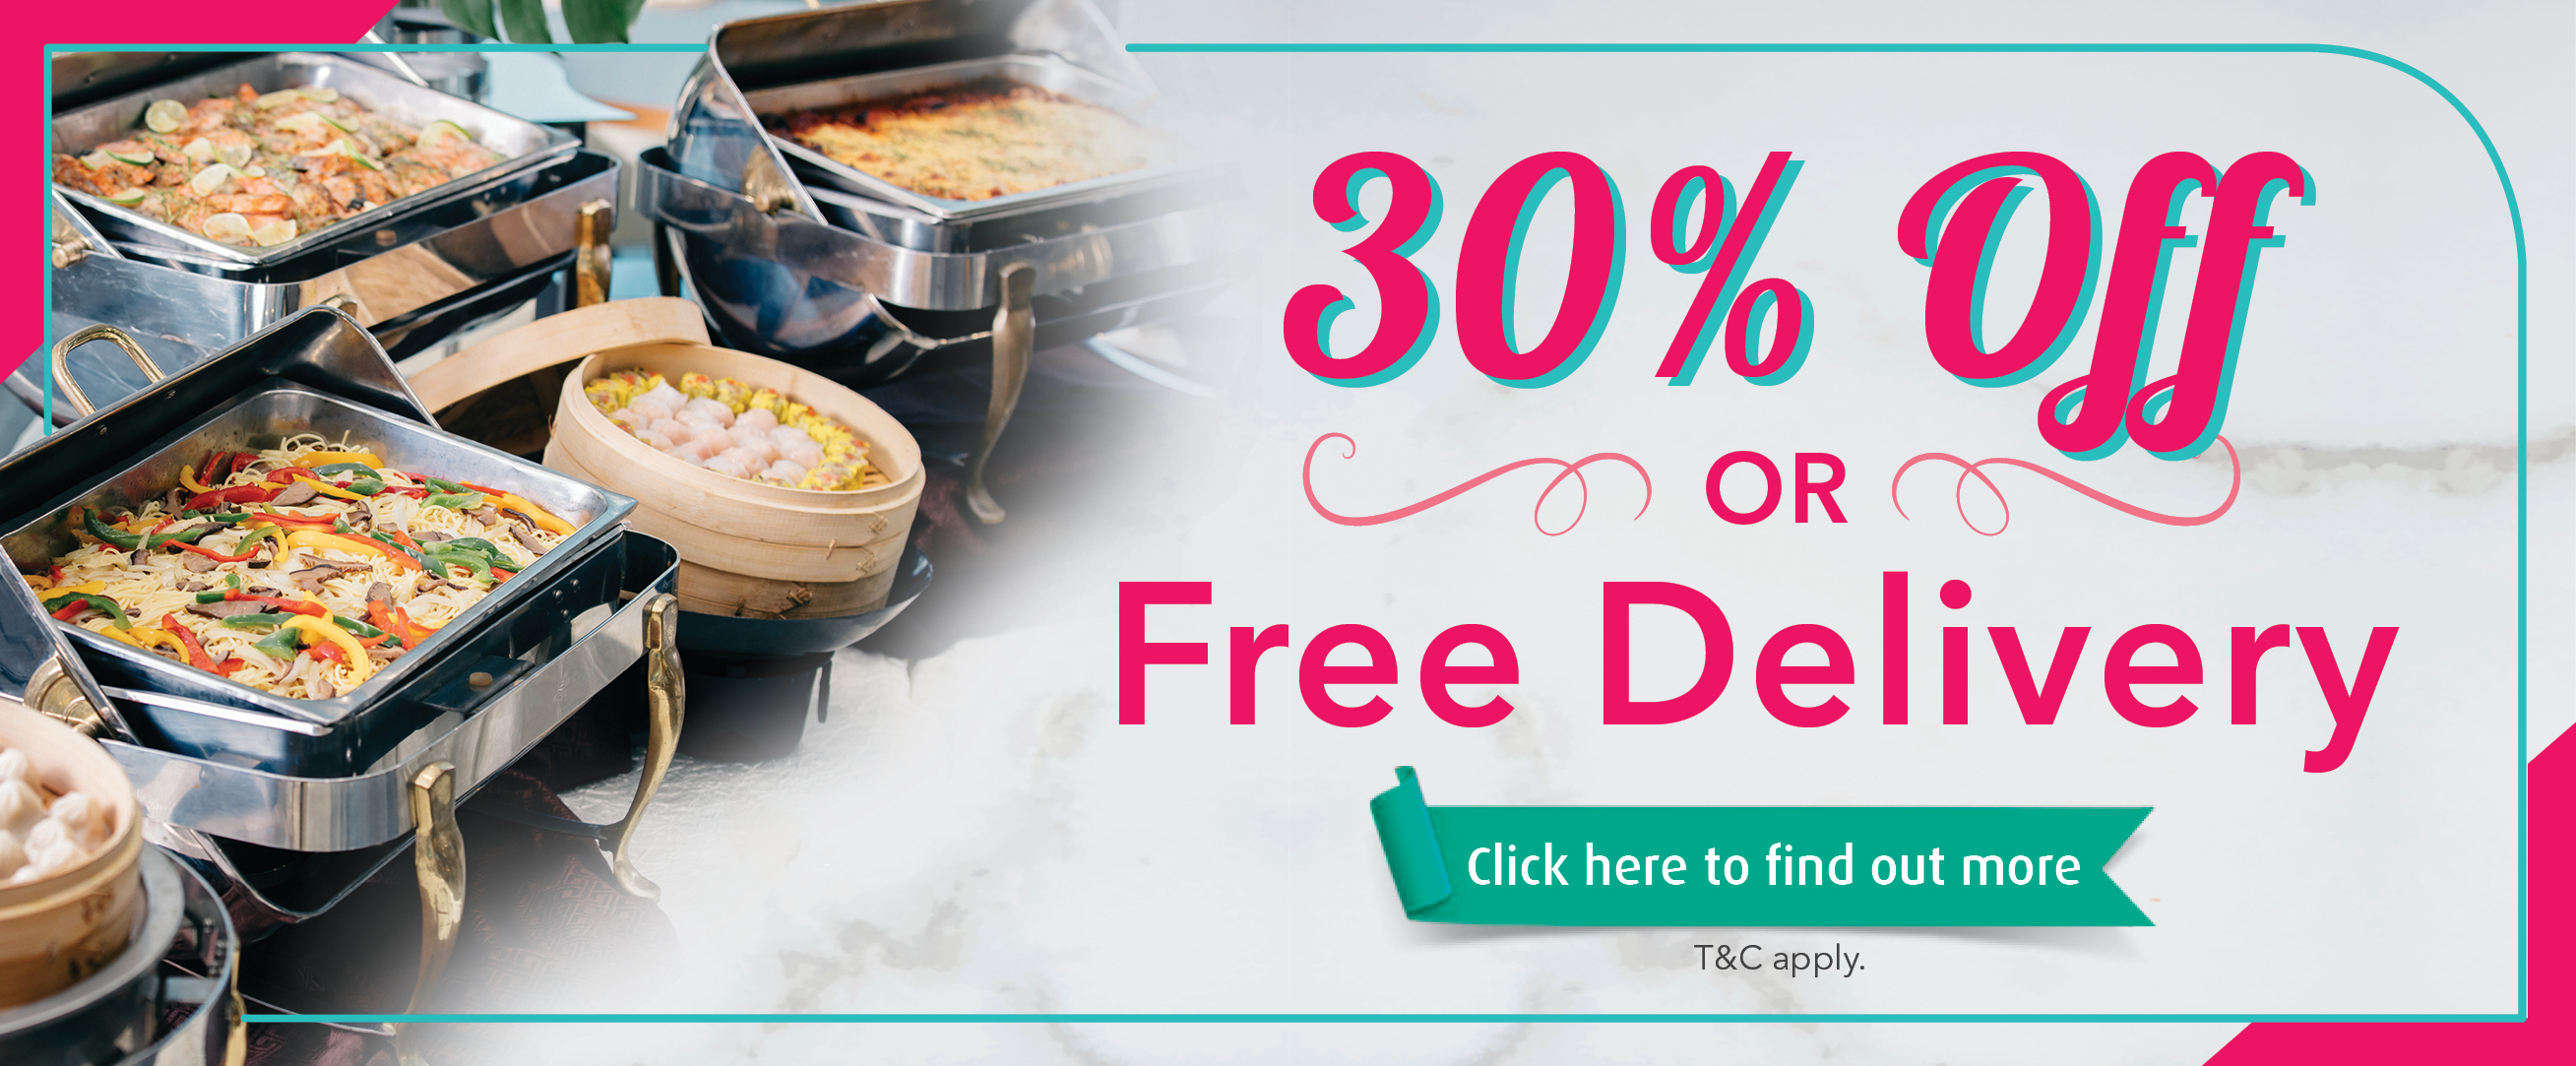 https://www.selectcatering.com.sg/promotions/?prid=58